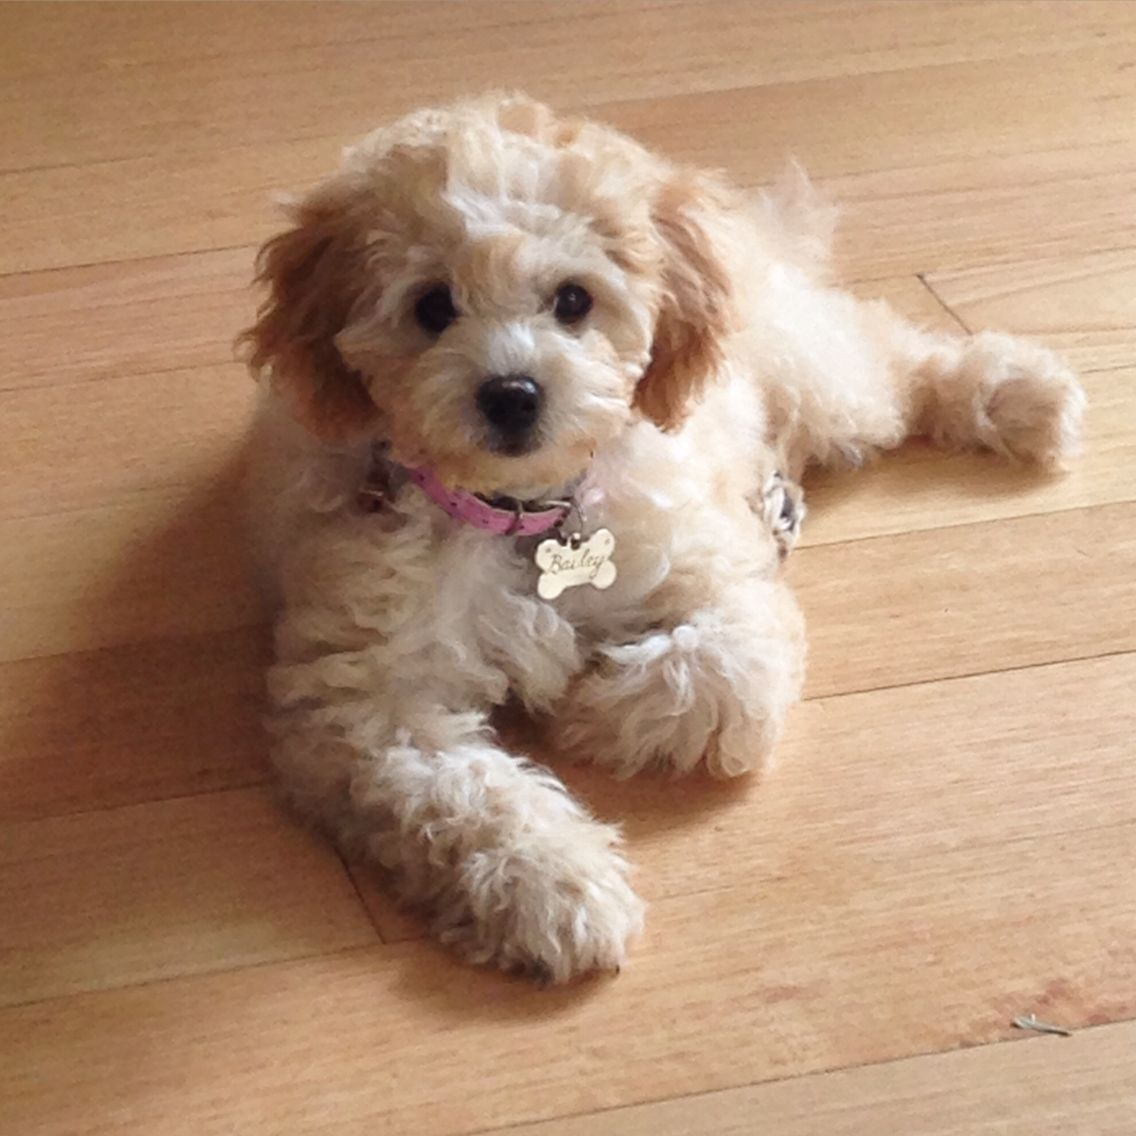 Bailey The Apricot Toy Cavoodle Adorable Puppy Cavoodle Cavapoo Really Cute Puppies Cute Dogs Poodle Puppy